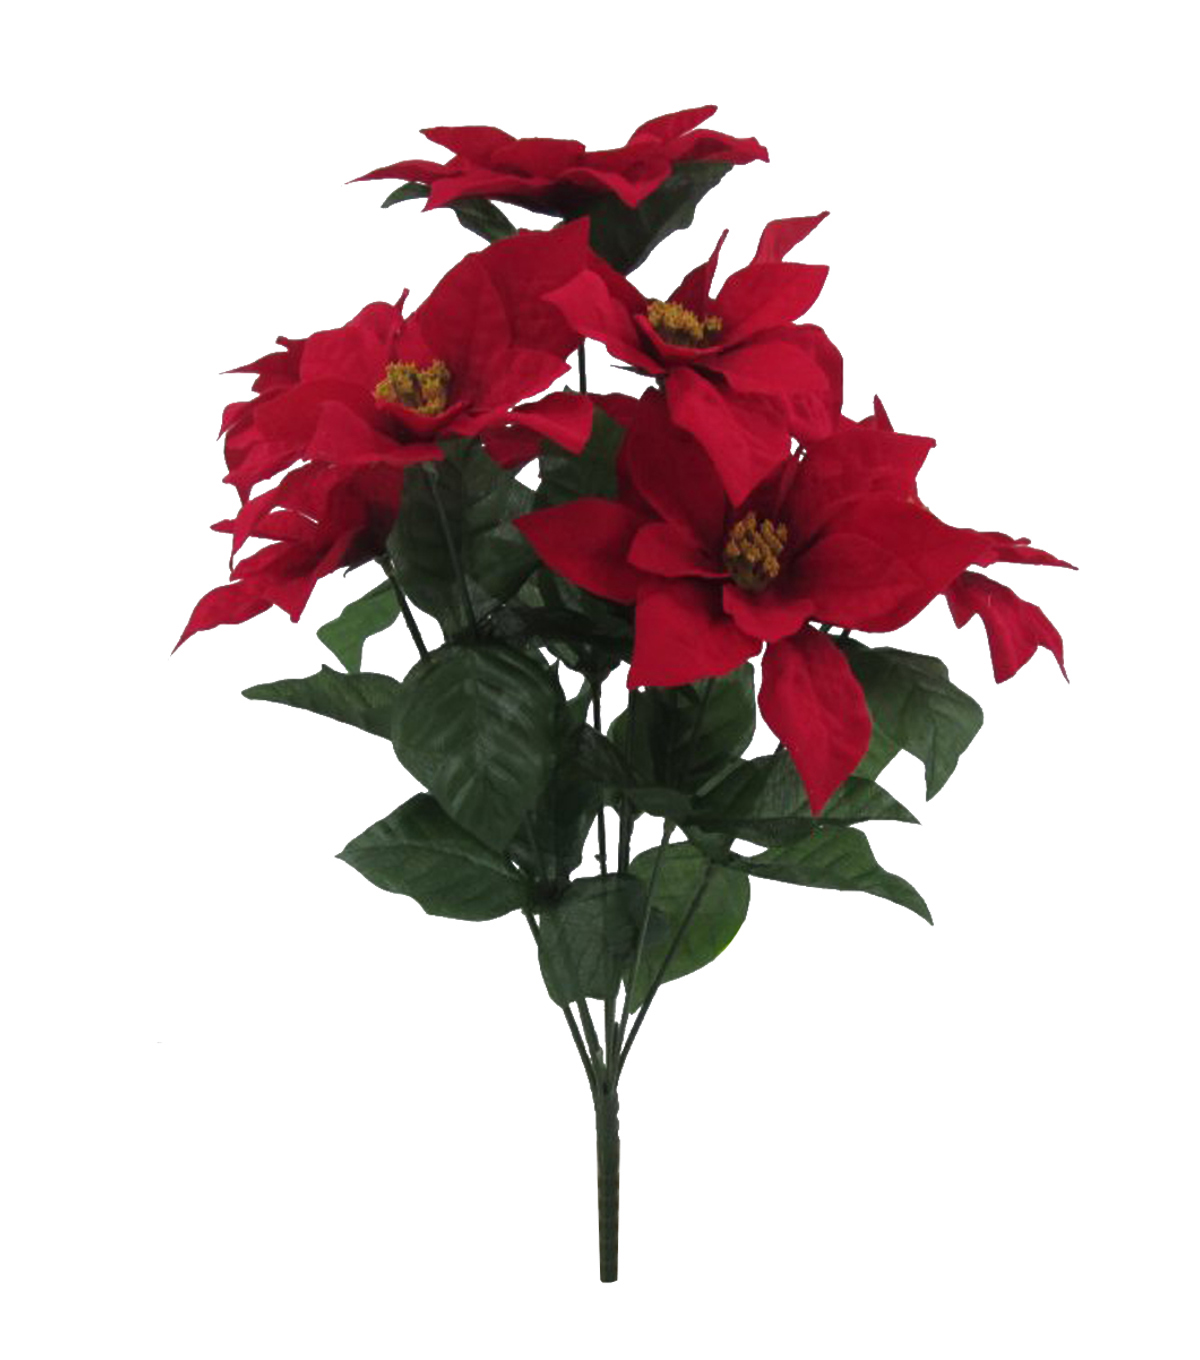 Blooming Holiday Poinsettia Bush-Red